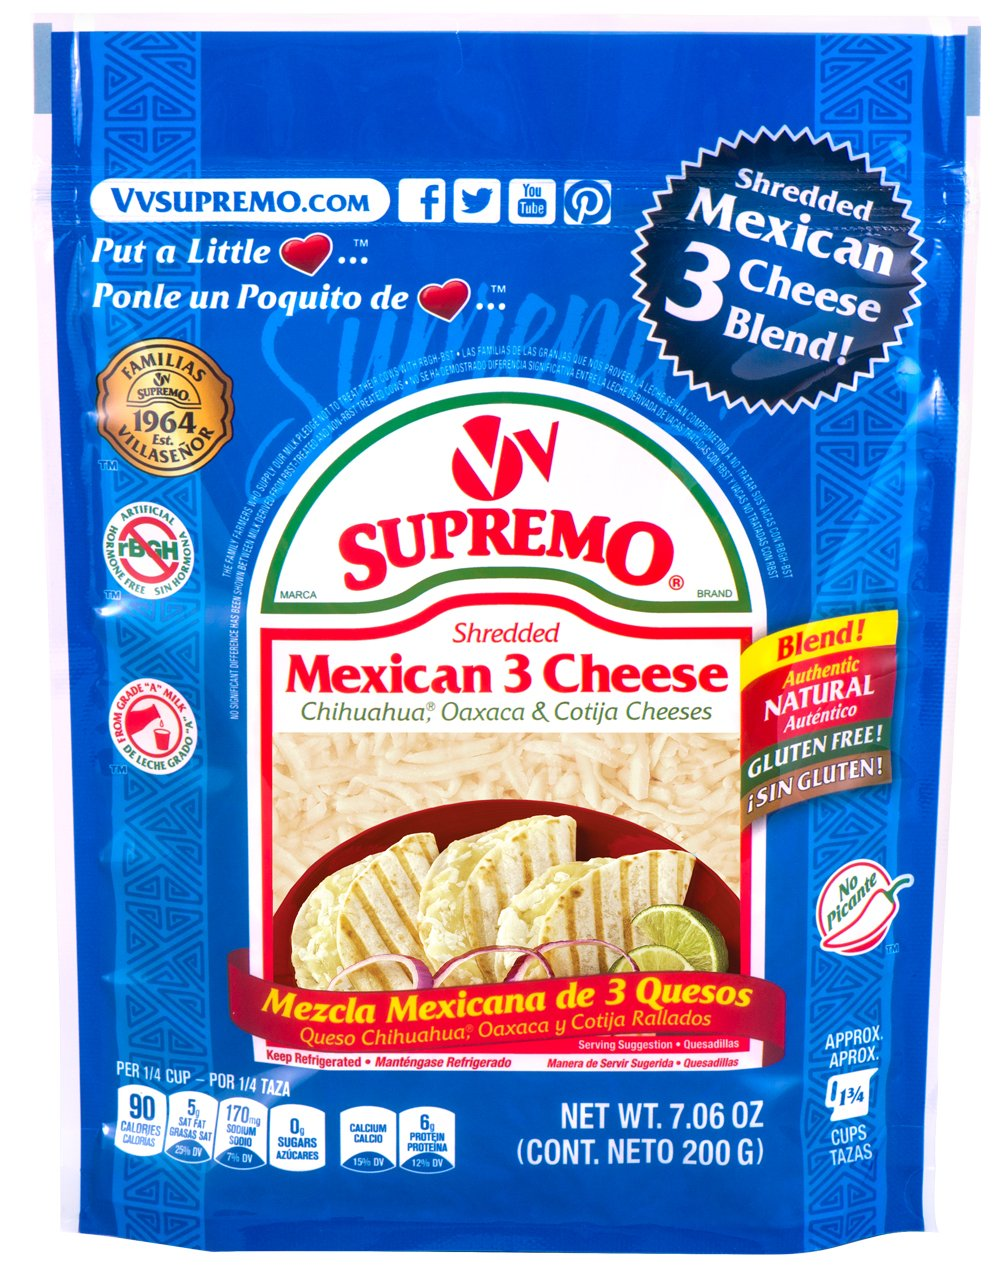 V&V Supremo, 3-Cheese Shredded Mexican Blend, 7.06 oz: Amazon.com: Grocery & Gourmet Food